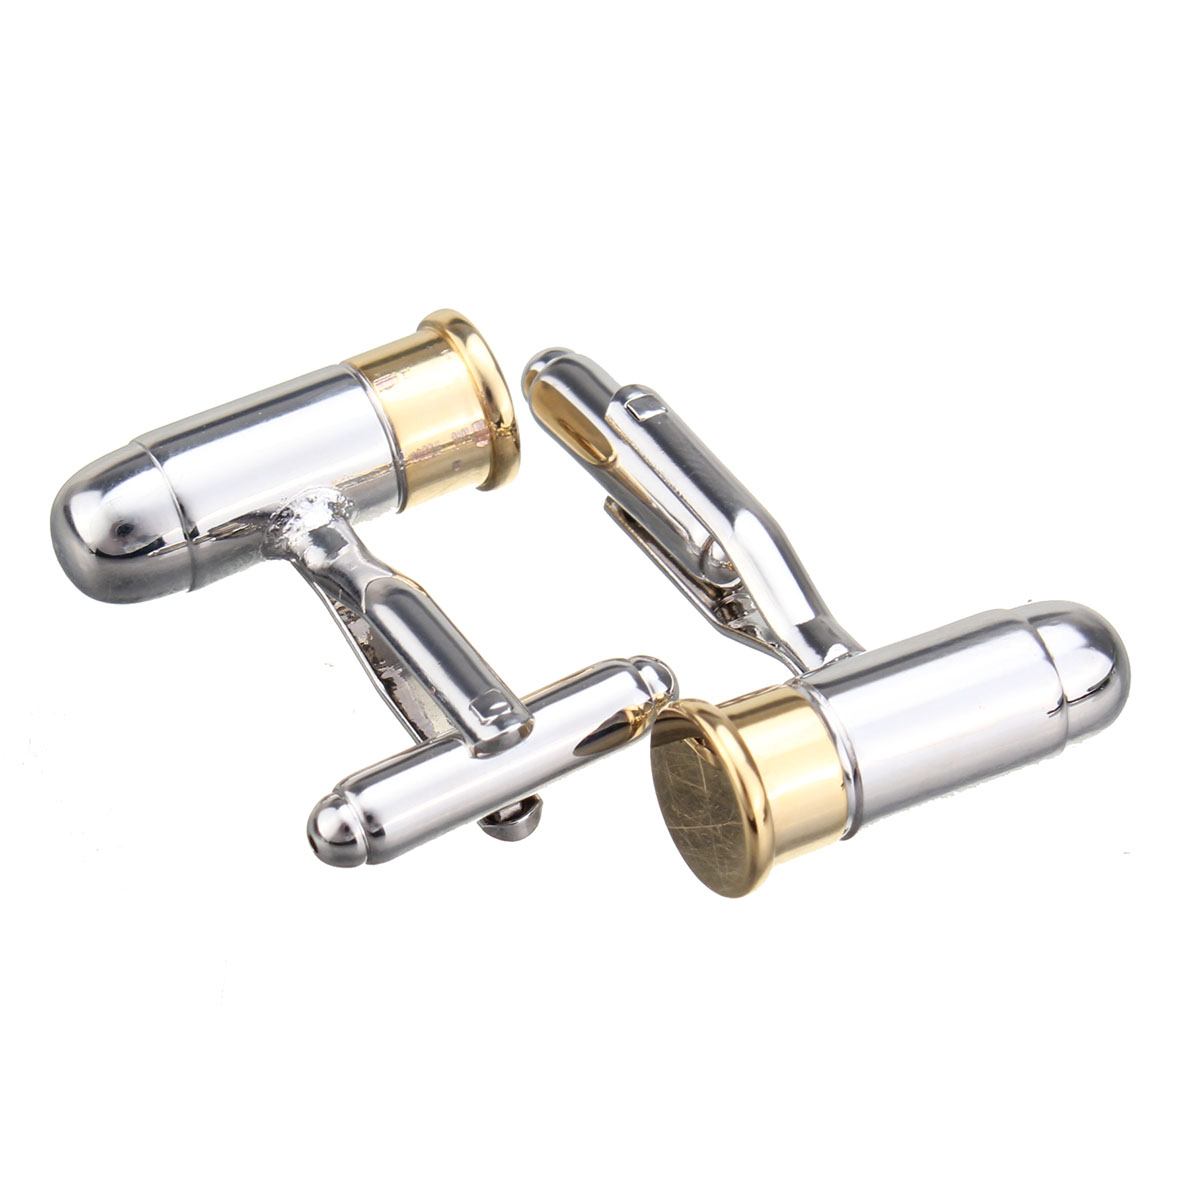 Men Male Silver Gold Bullet Pattern Electroplate Cuff Links Wedding Gift Suit Shirt Accessories